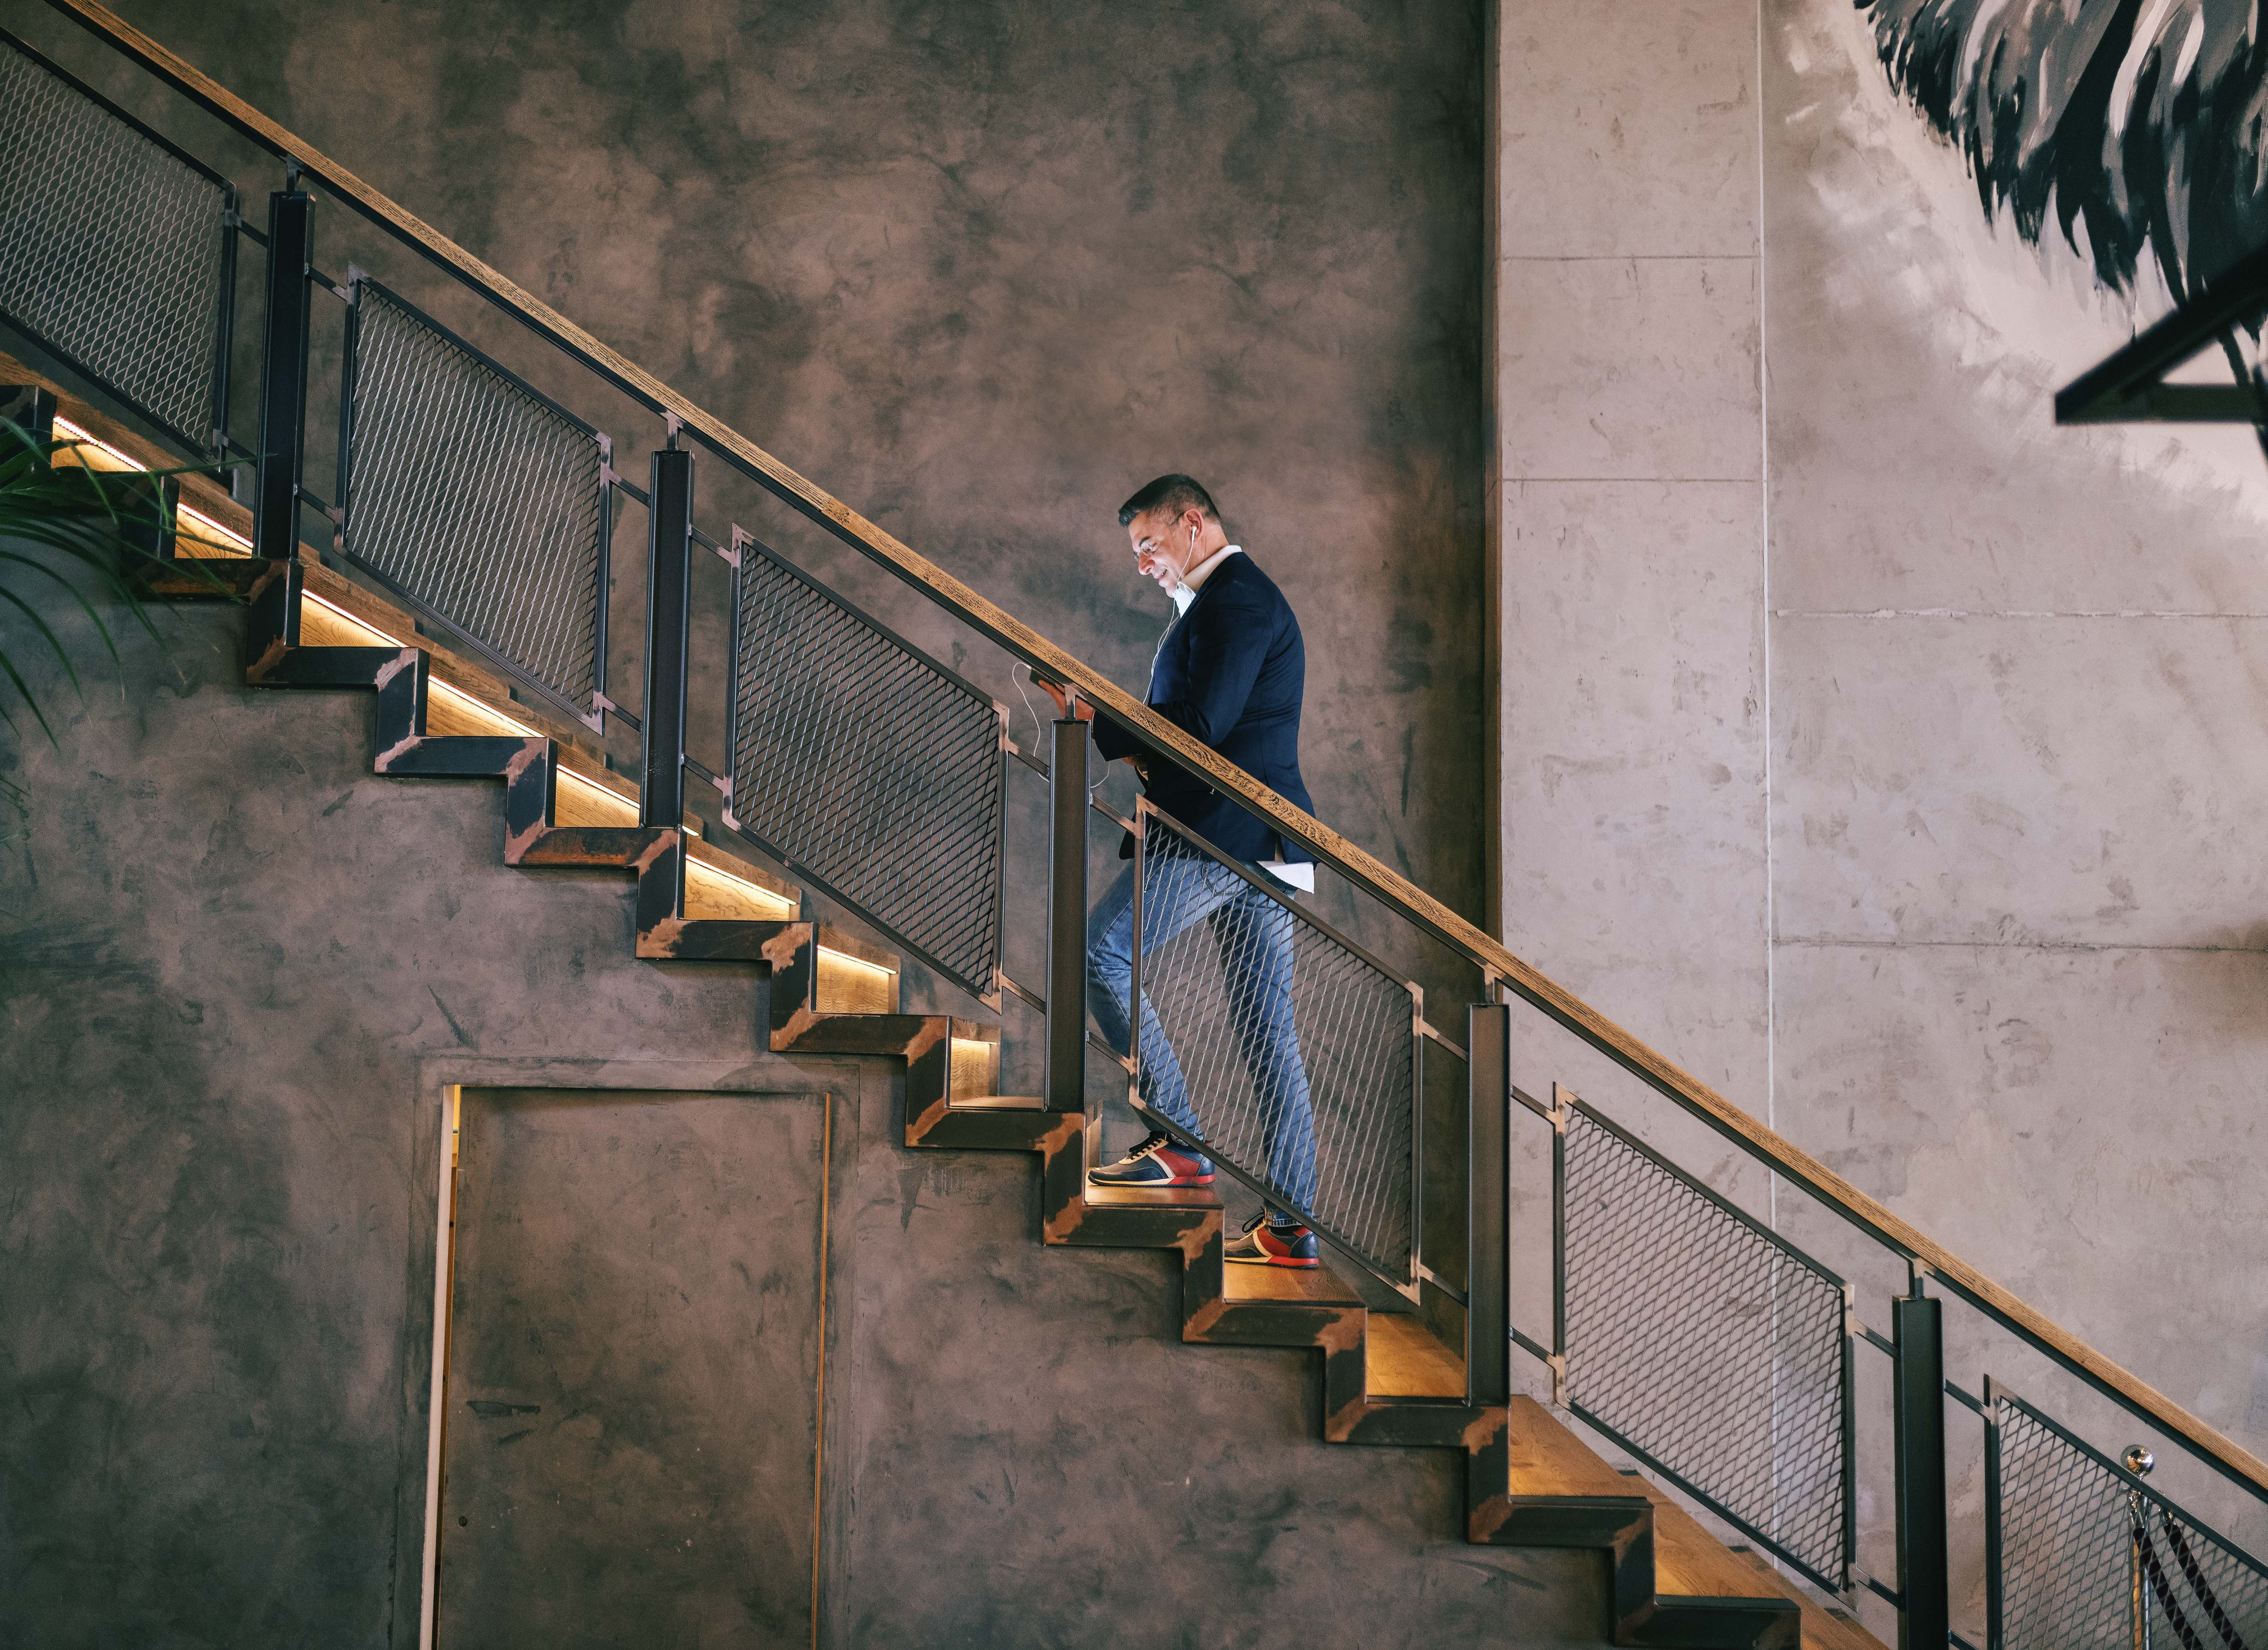 Taking a short break to climb a couple flights of stairs or chat at the water cooler can help us reengage at work. (Dusan Petkovic/Shutterstock)